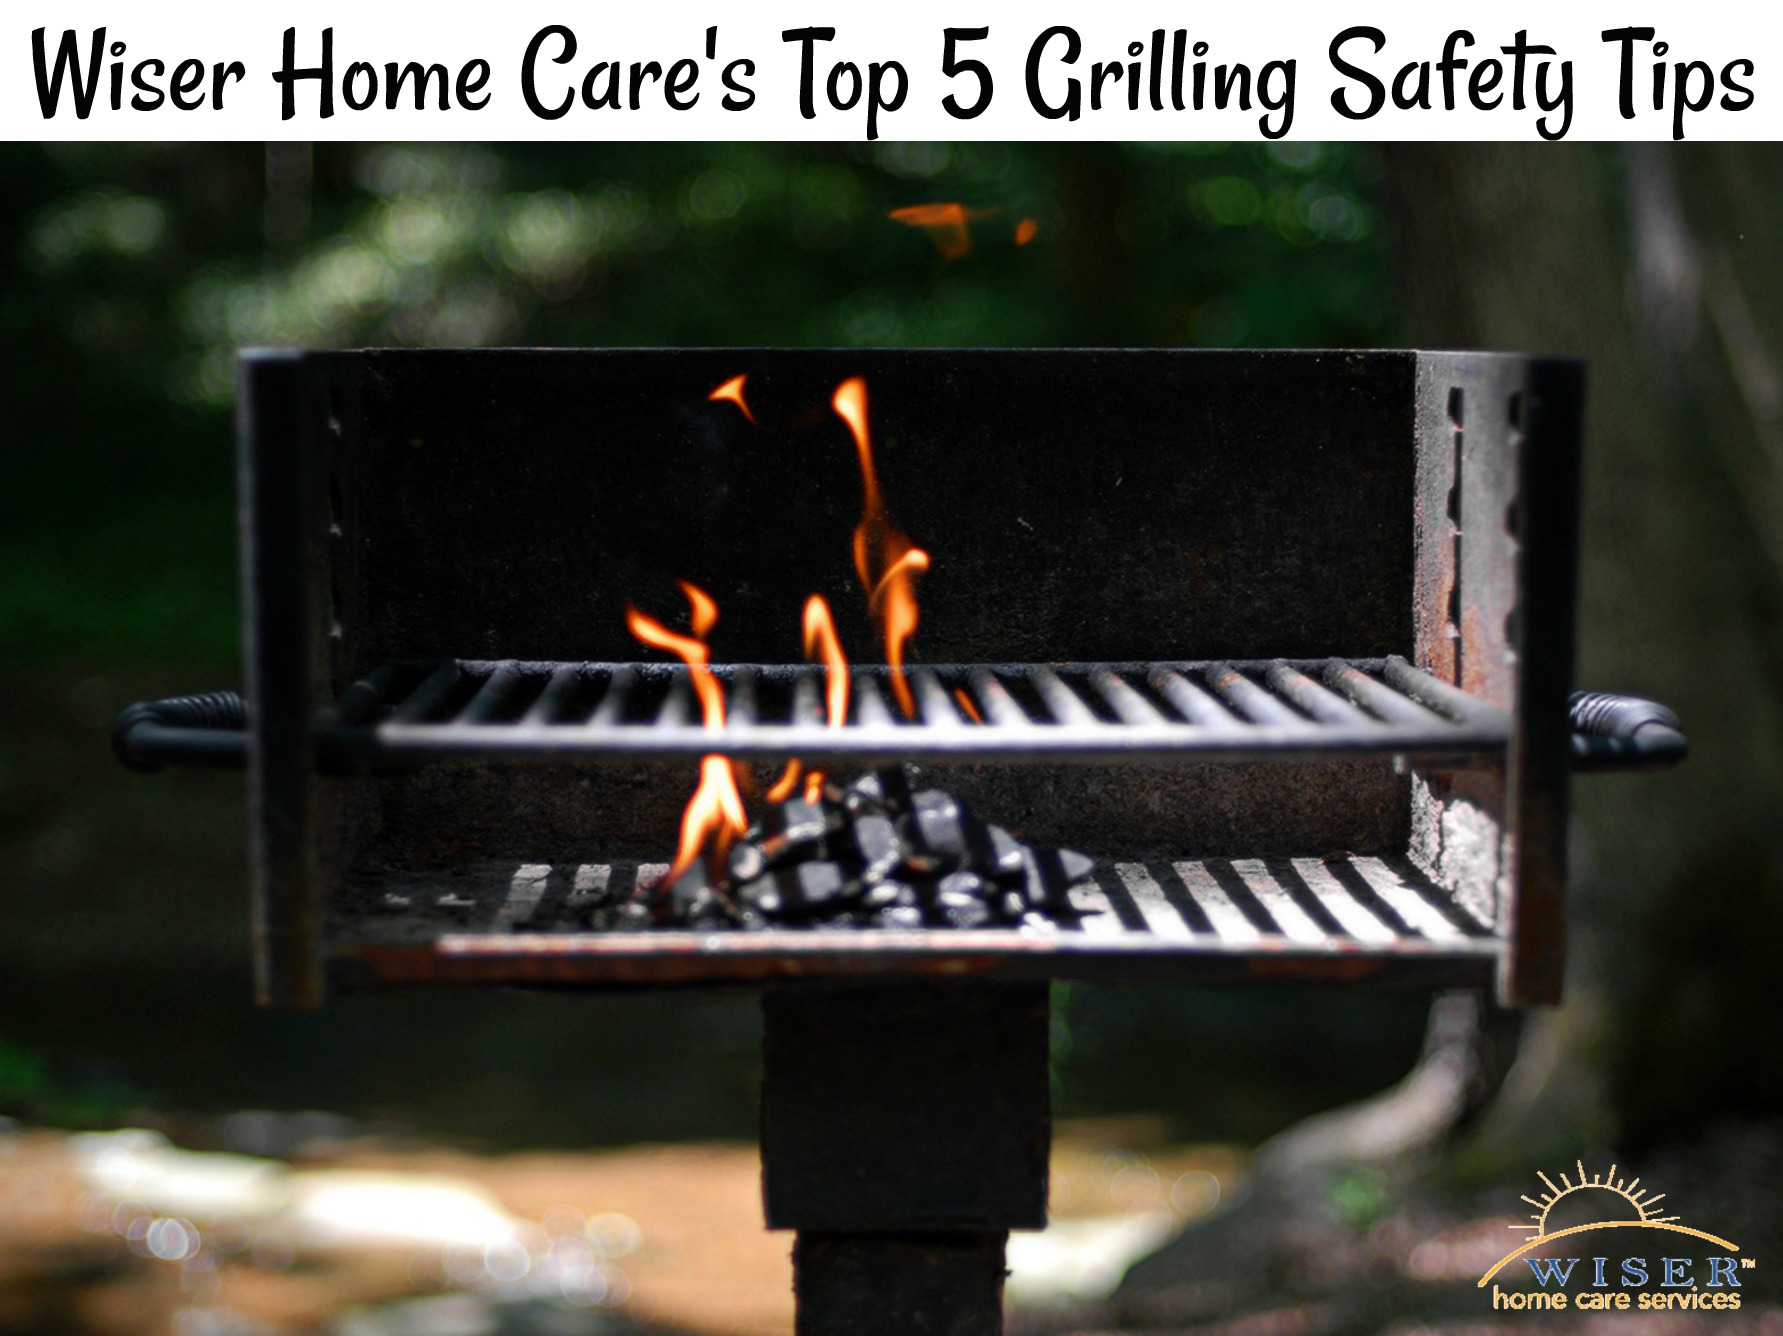 July is National Grilling Month, and what better way to celebrate than a 2-part blog series exploring our favorite grilling safety tips and recipes.